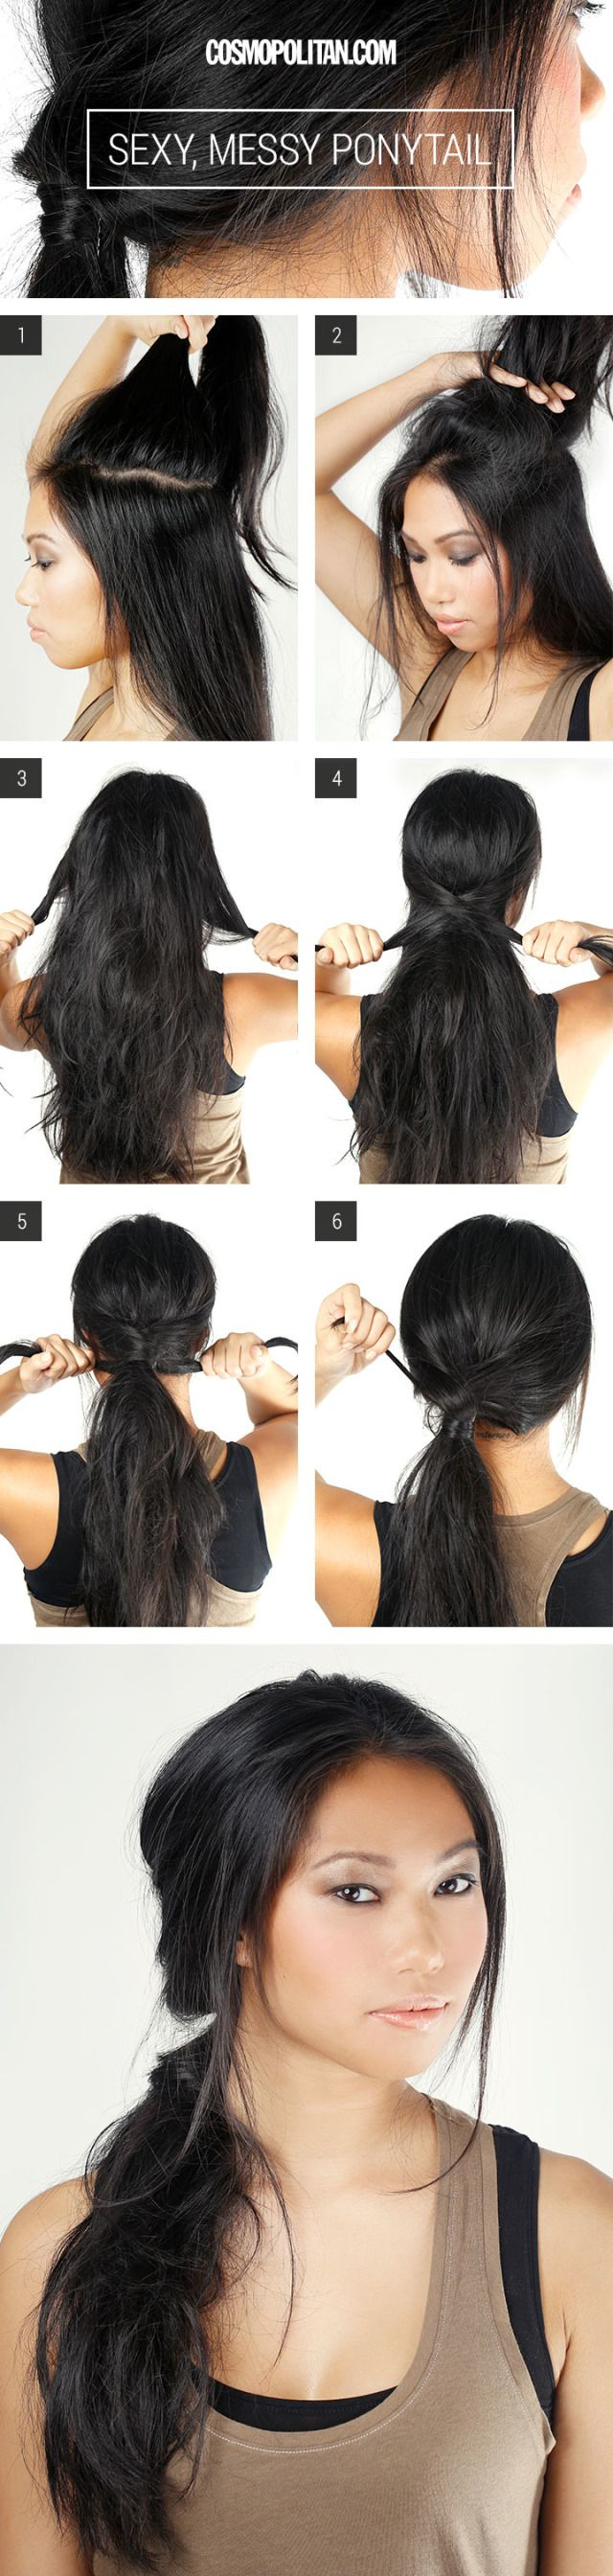 How To - Messy Ponytail Tutorial - a lovely relaxed style which looks great with any outfit...x